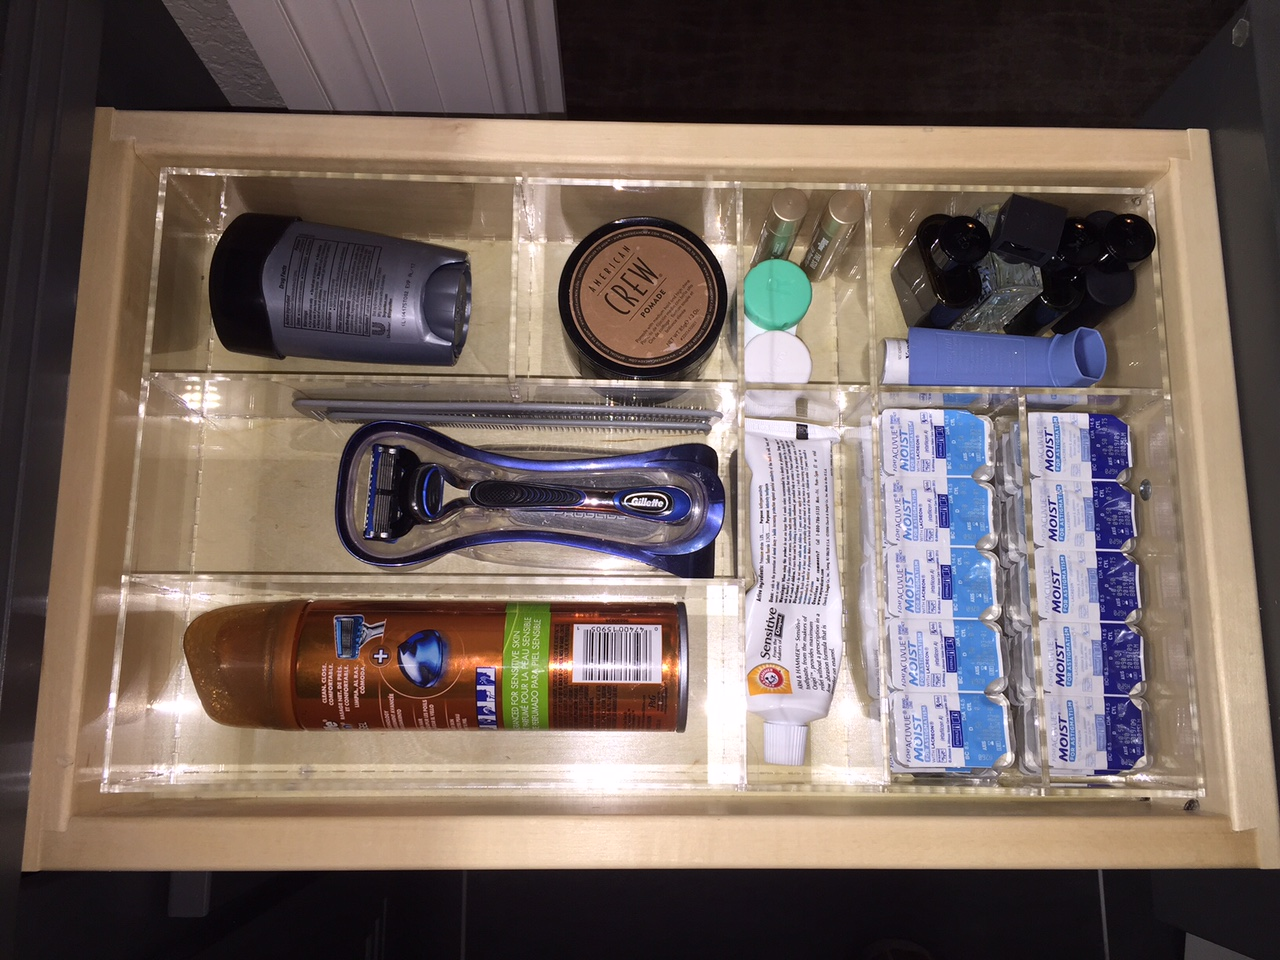 man bathroom 2 drawer organizer